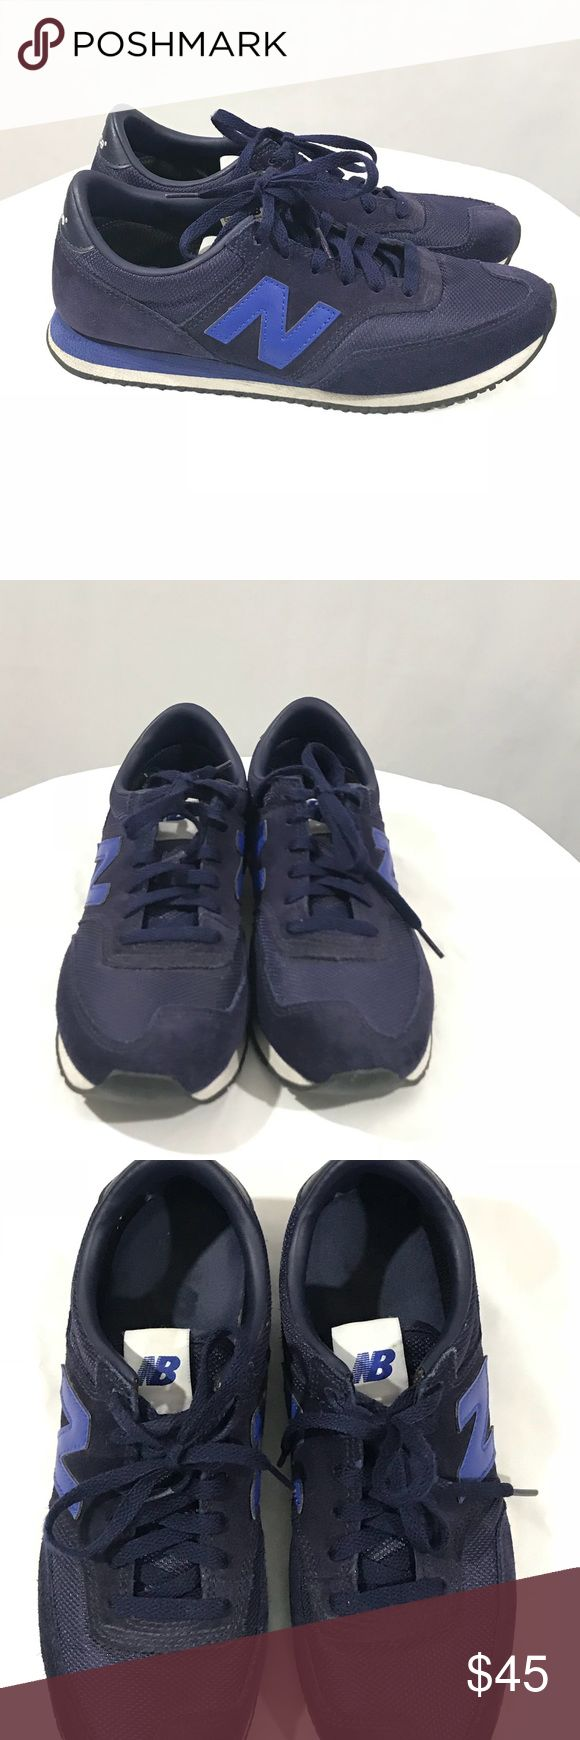 NEW BALANCE X J CREW Running Trainers Navy 8.5 NEW BALANCE Ladies X J CREW CW620JL1 Running Trainers In Navy Size 8.5 EU  Excellent condition! No significant signs of wear.   Womens US size 8.5   EU 40 UK 6.5  Navy blue New Balance Shoes Athletic Shoes